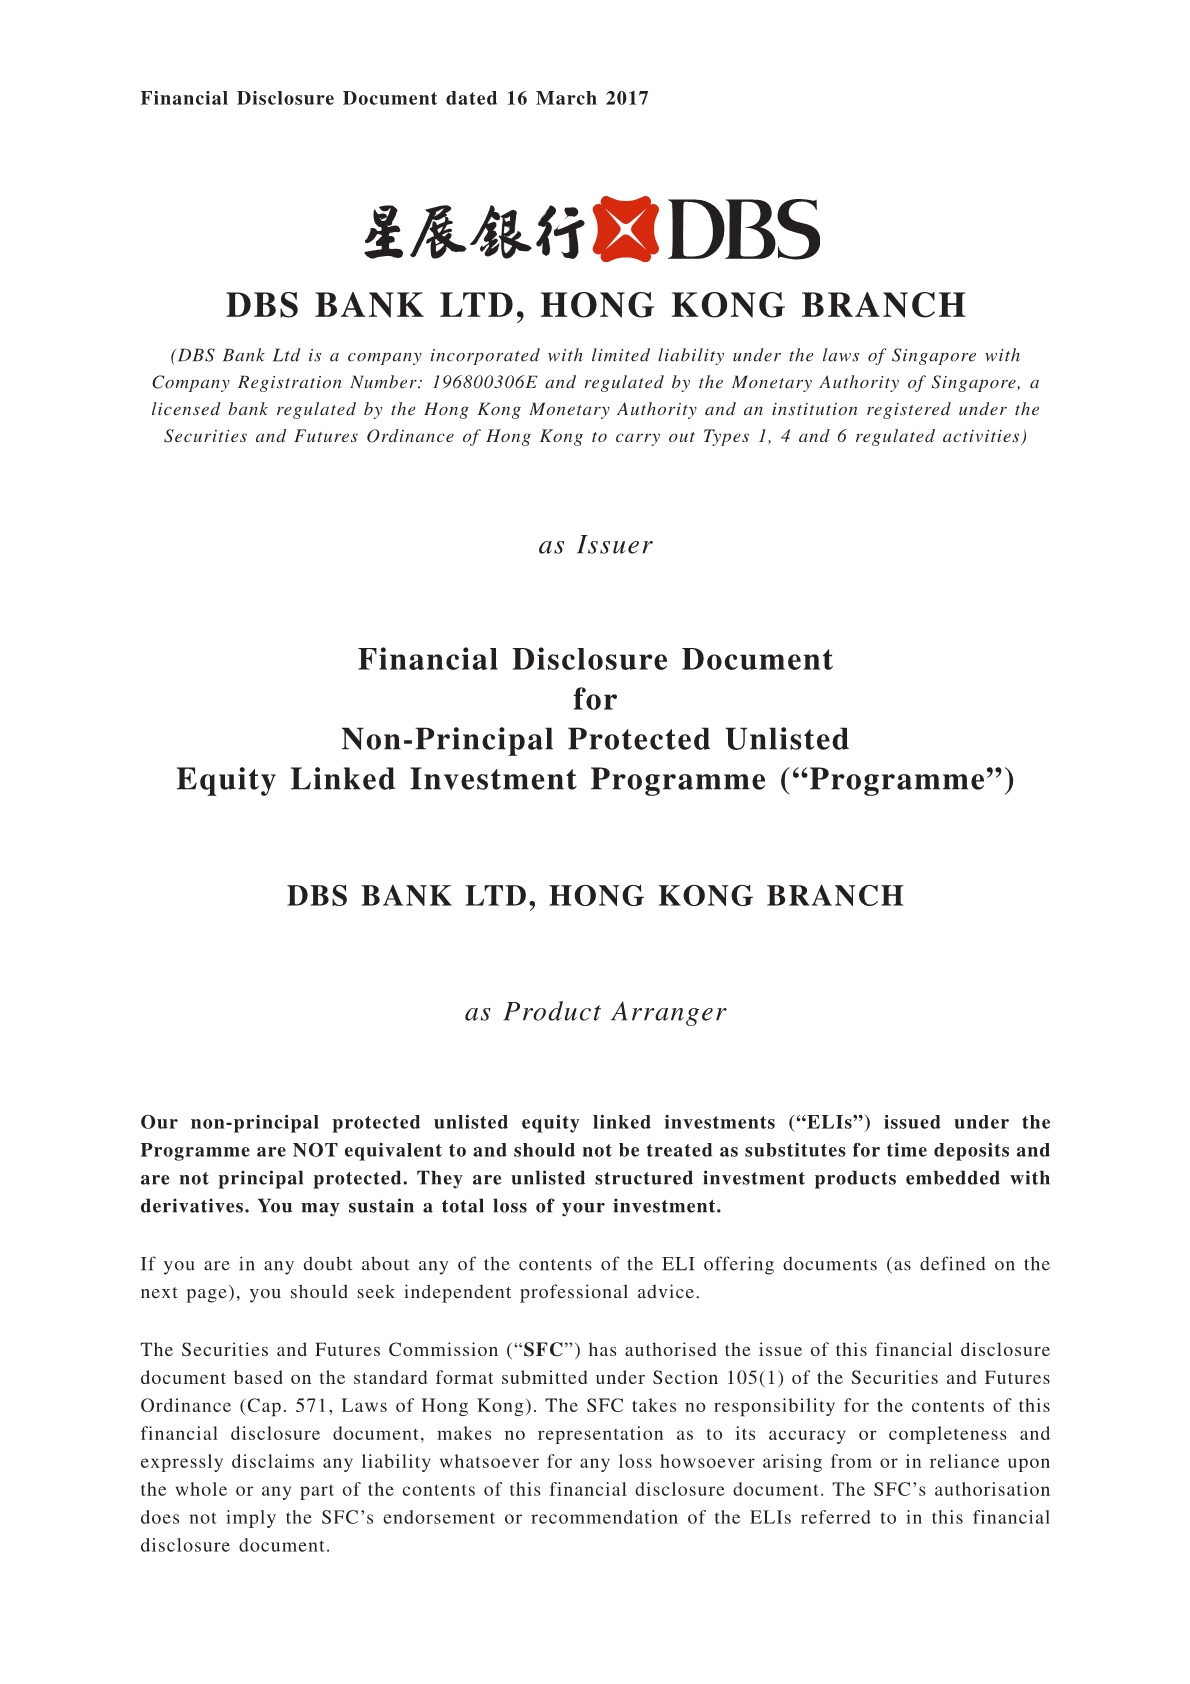 DBS Bank Ltd, Hong Kong Branch – Financial Disclosure Document